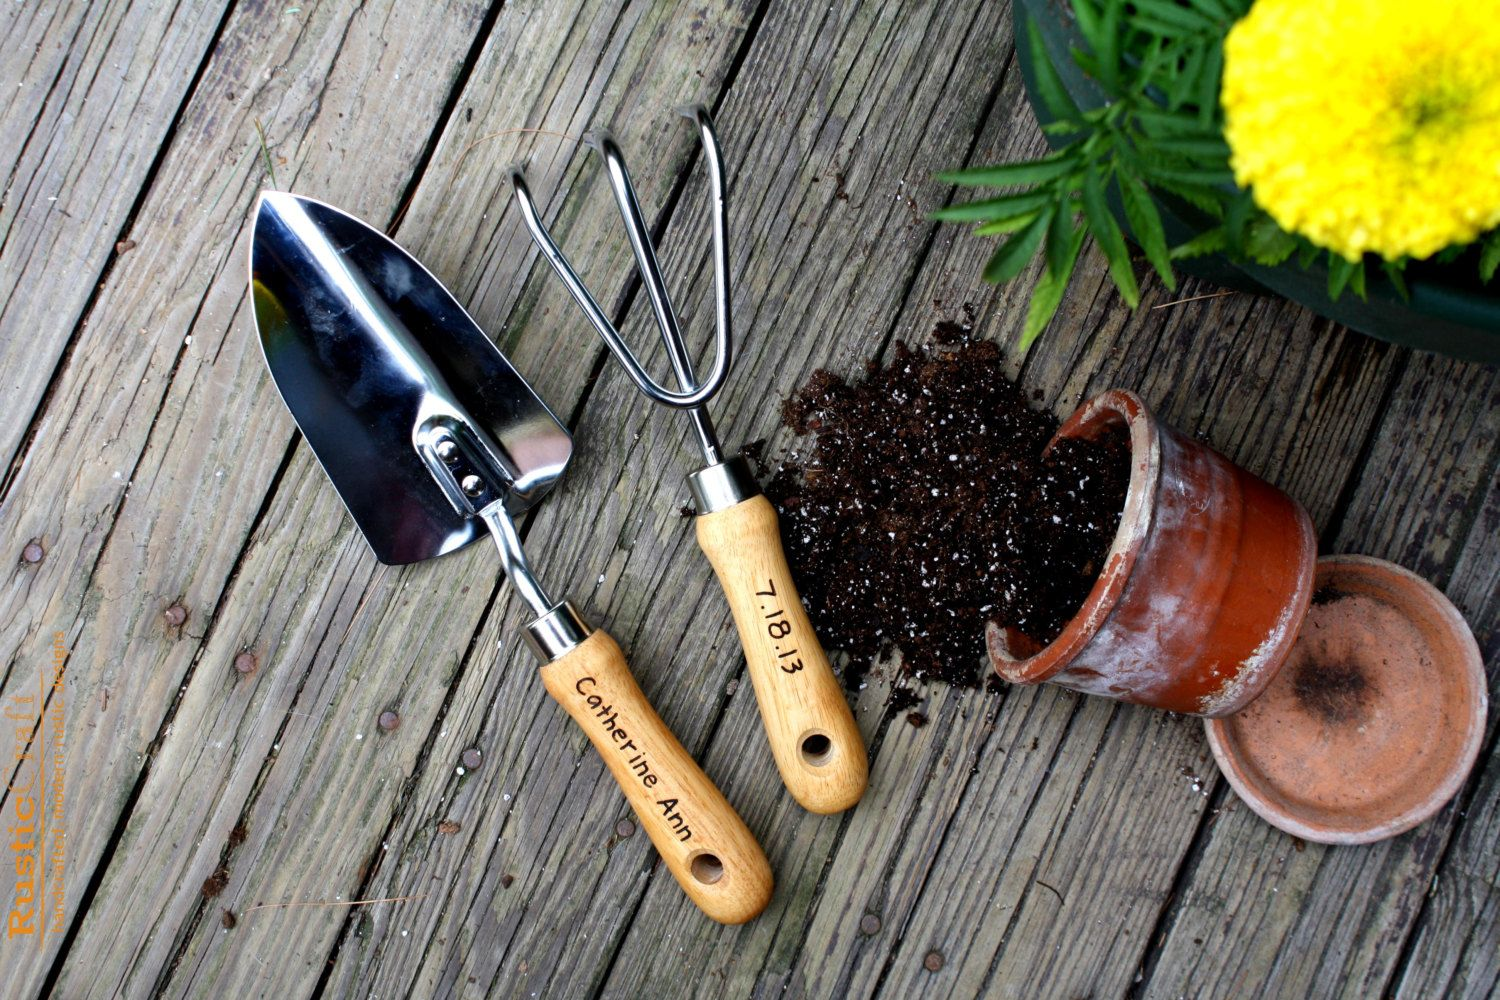 10 amazing dollar store gardening tools the budget diet for Gardening tools list with pictures